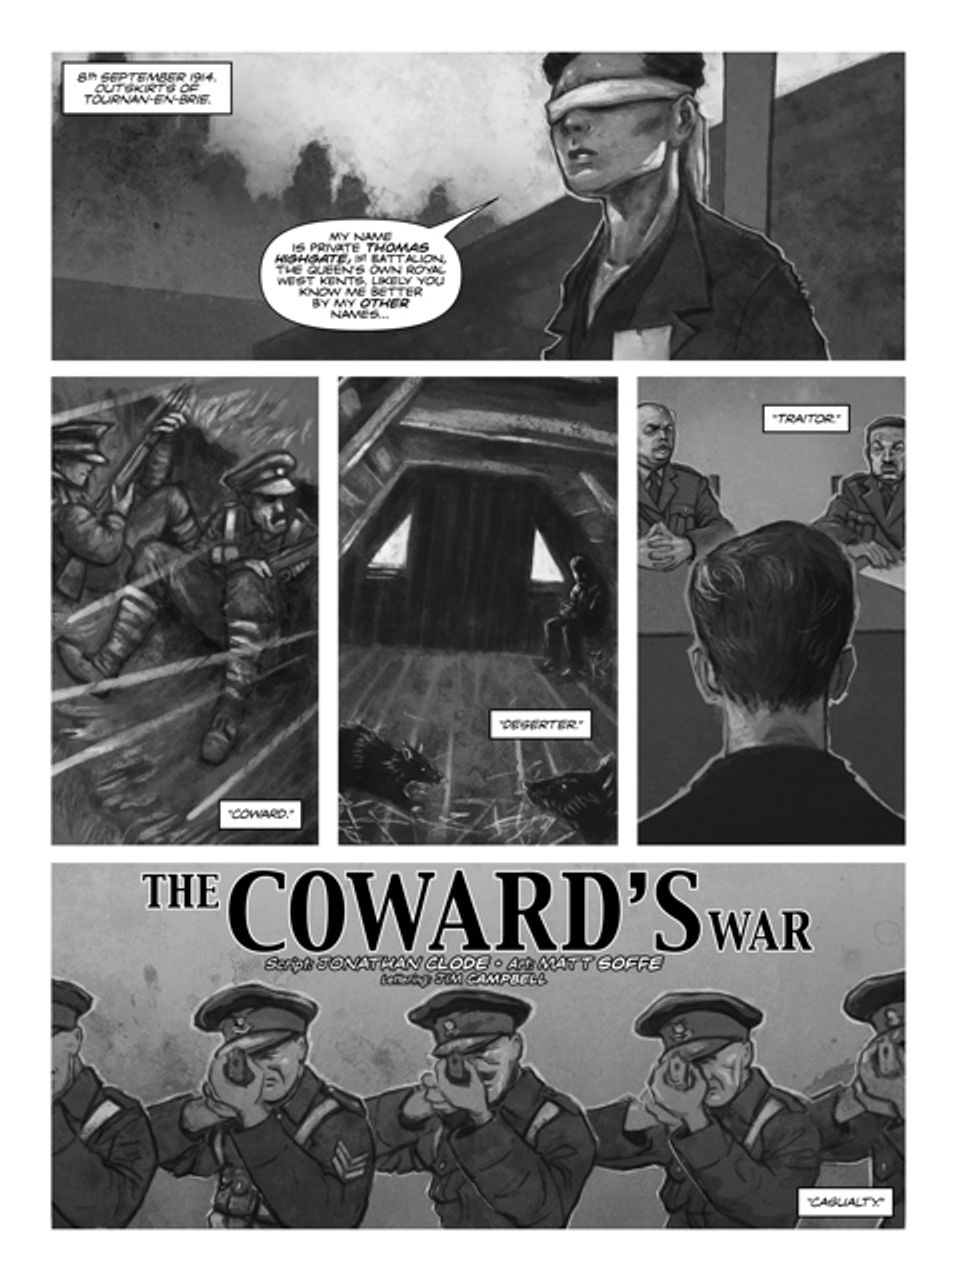 The Coward's War